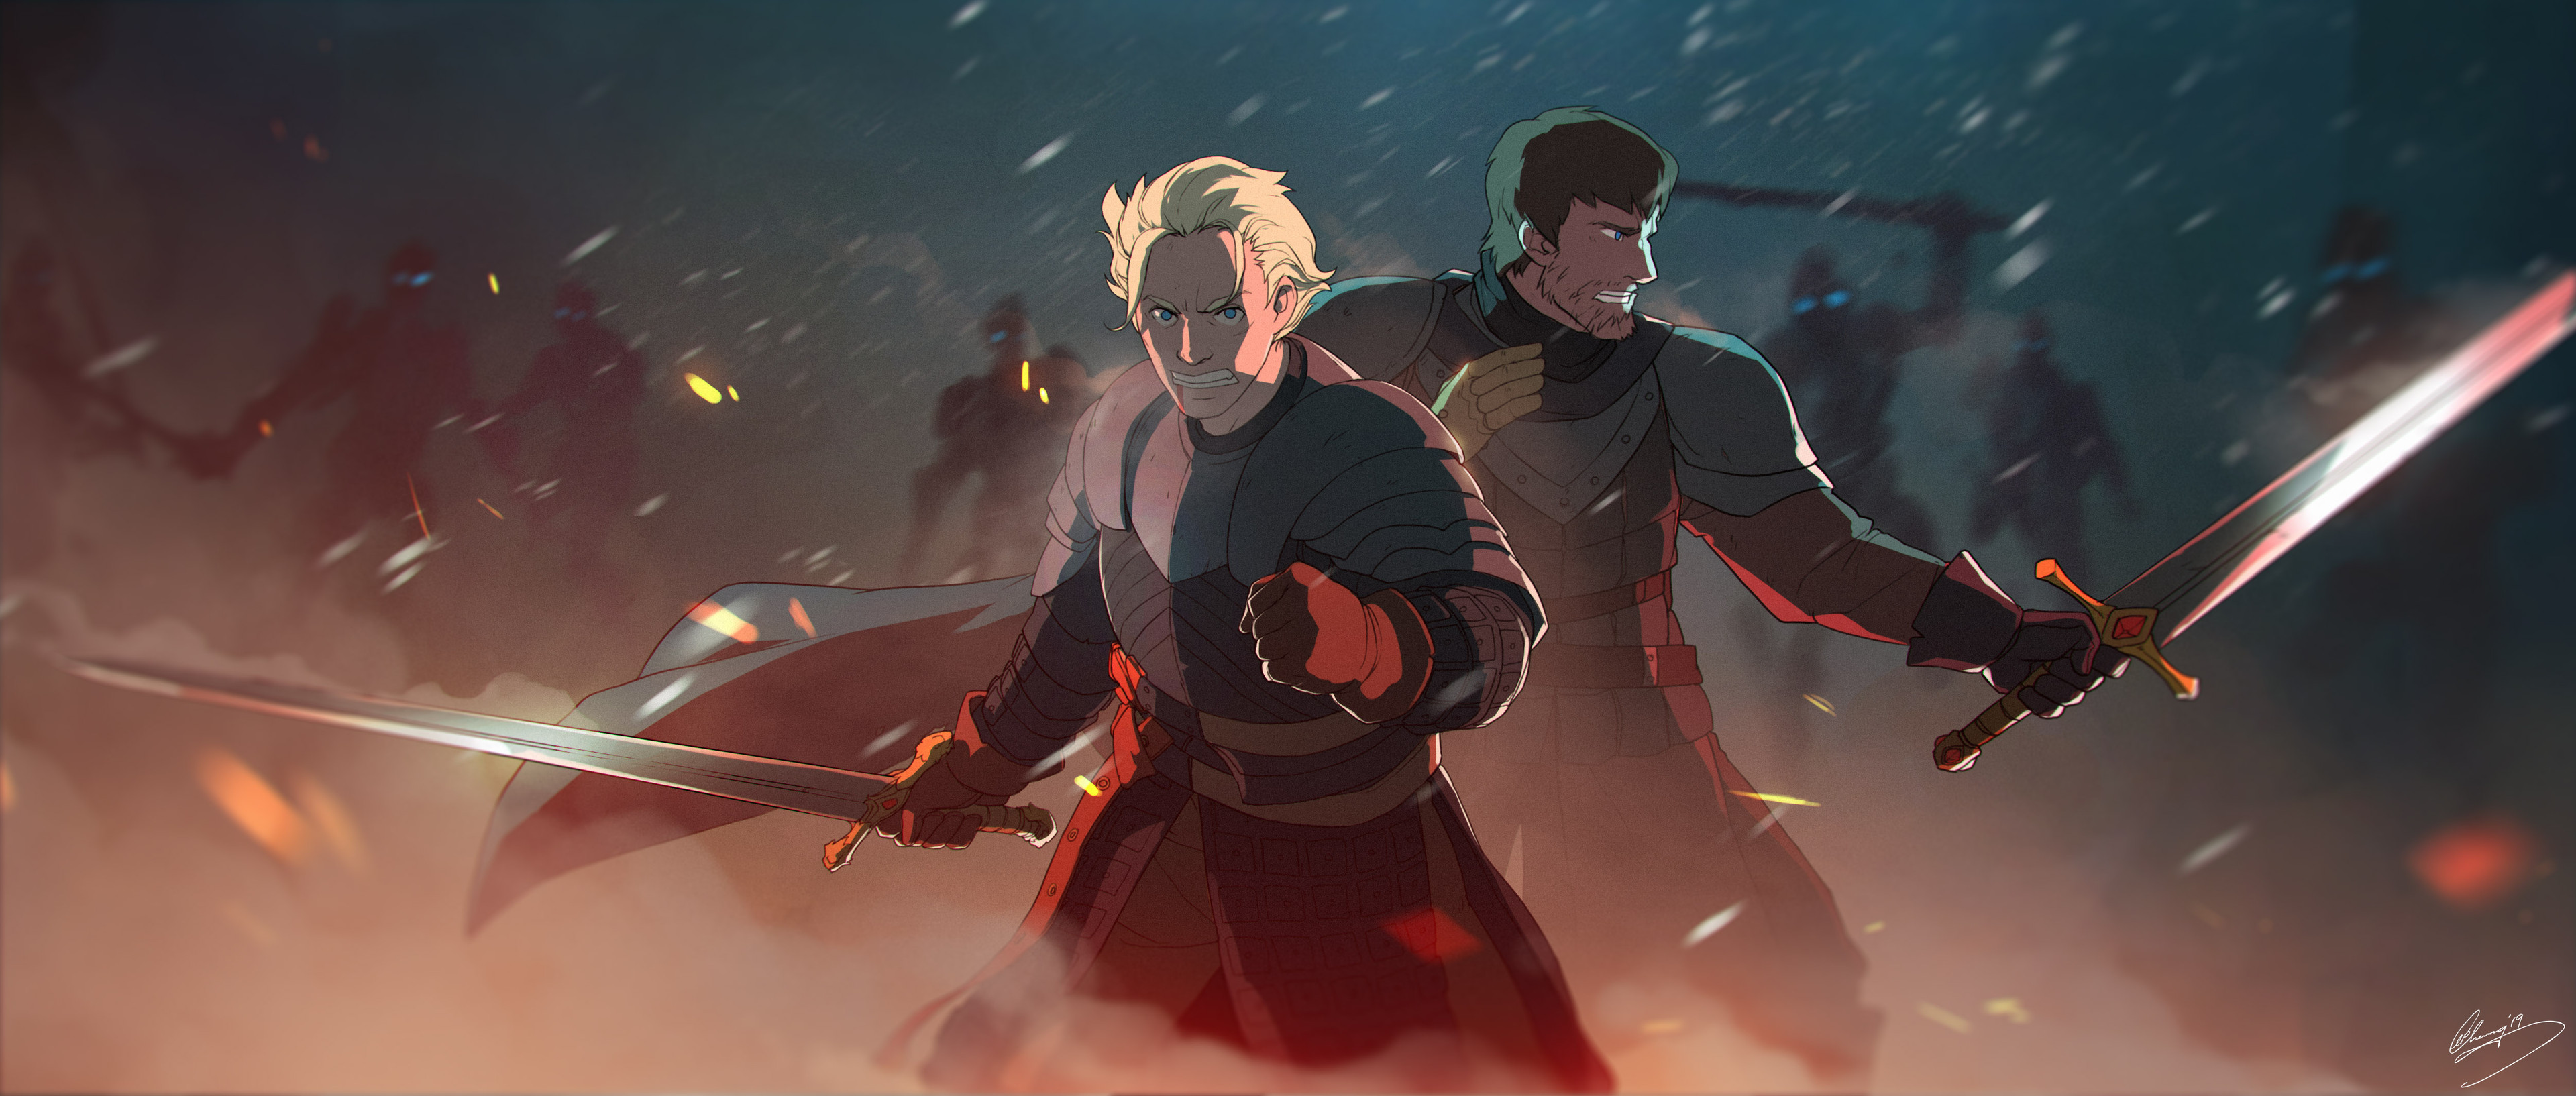 Artstation Game Of Thrones Fanart Knights Of The Seven Kingdoms Lap Pun Cheung